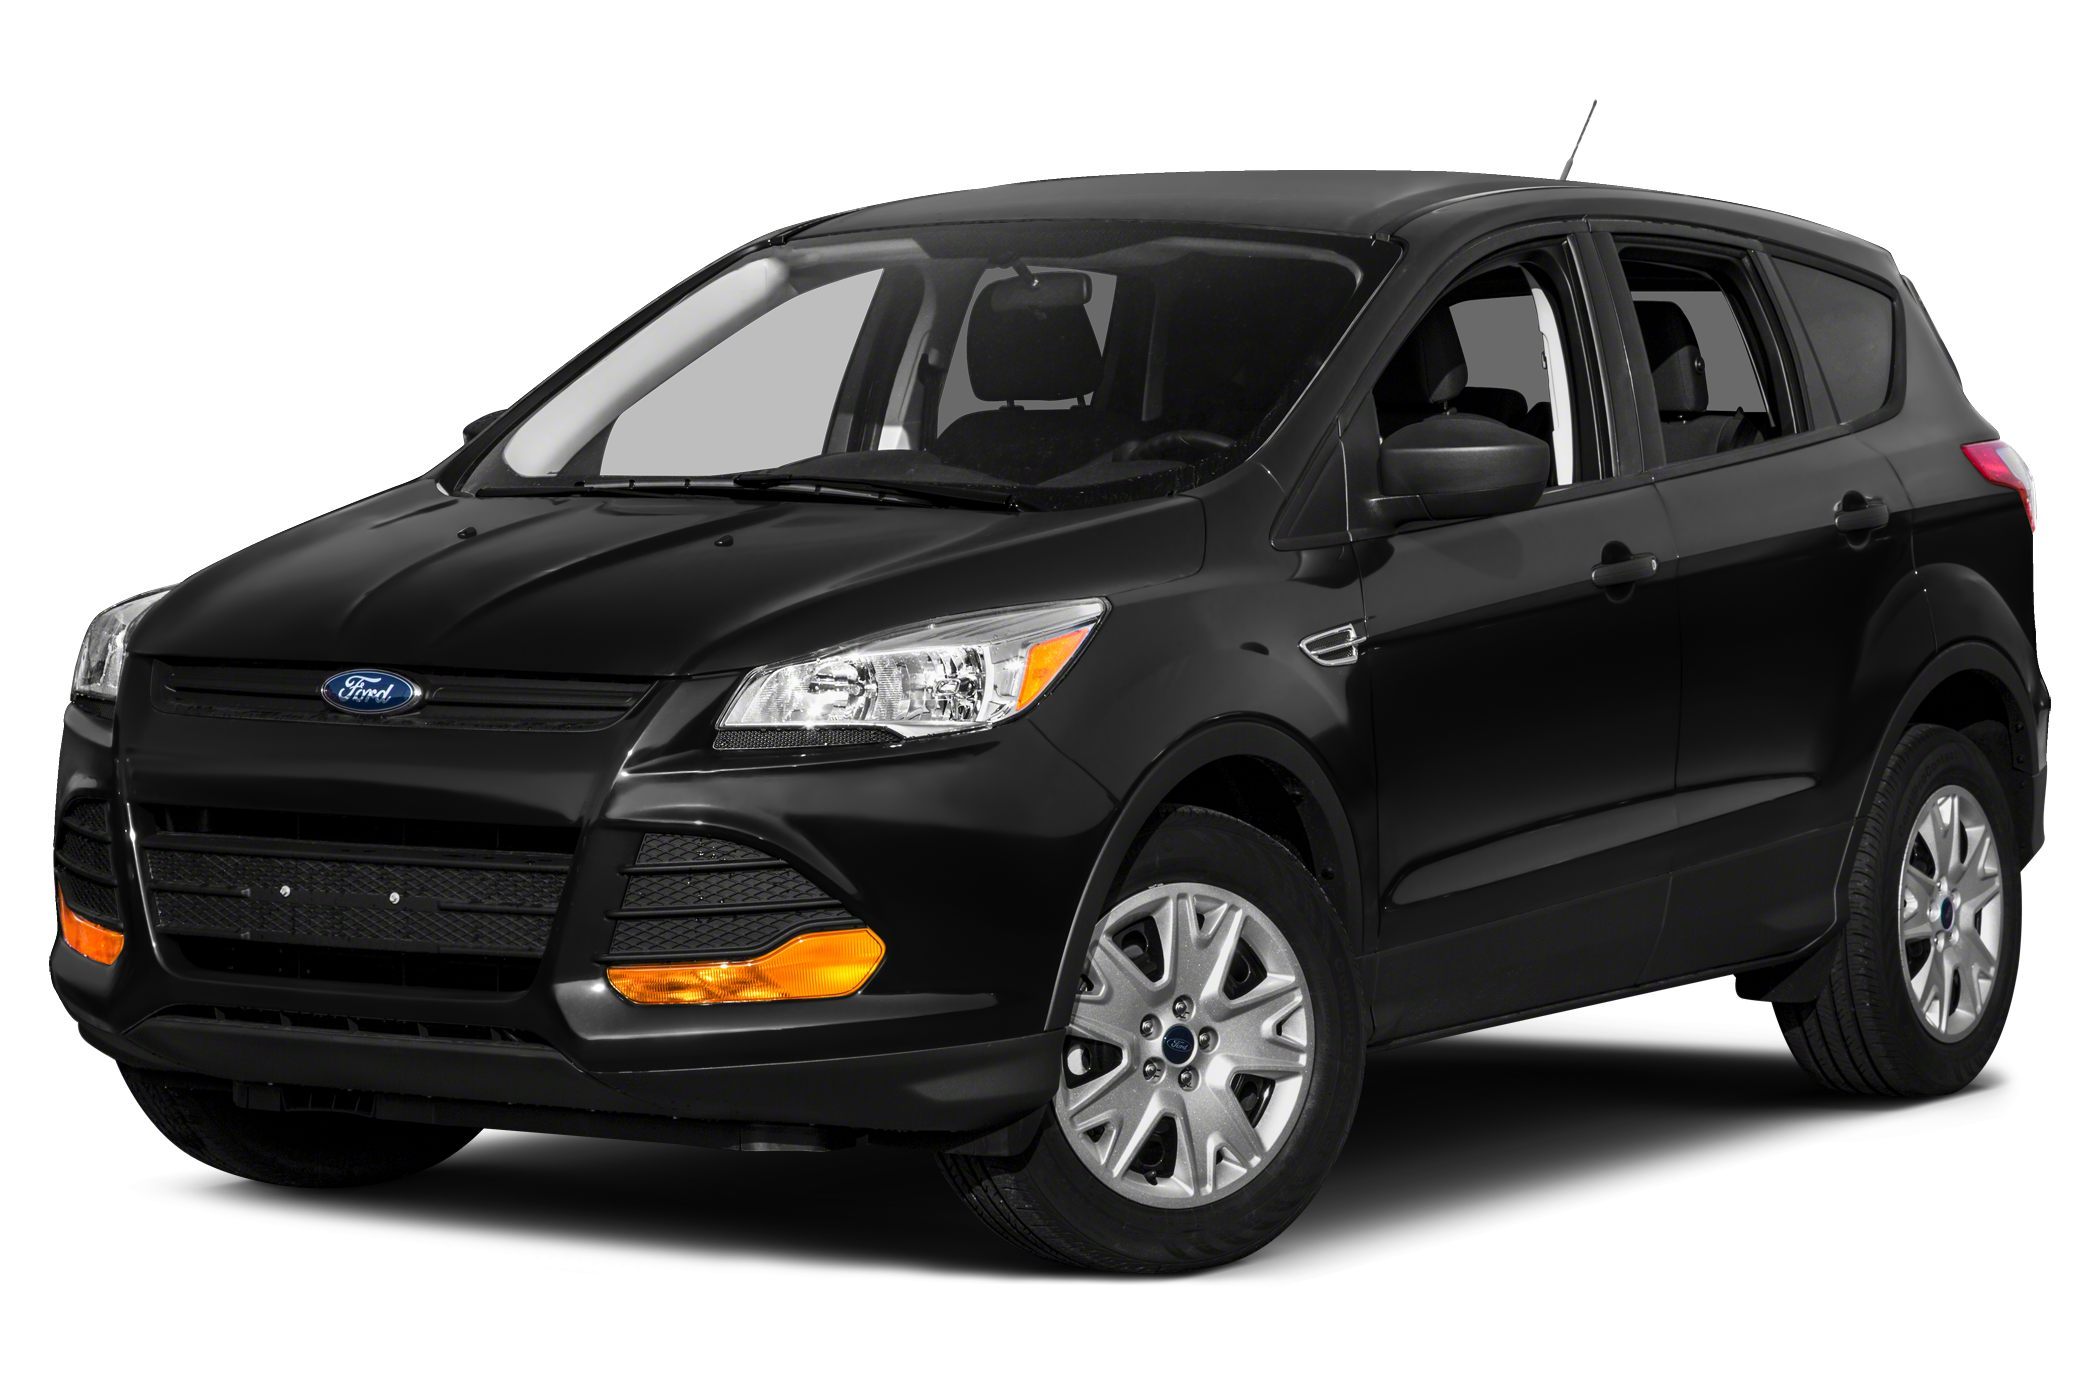 2014 Ford Escape New Car Test Drive